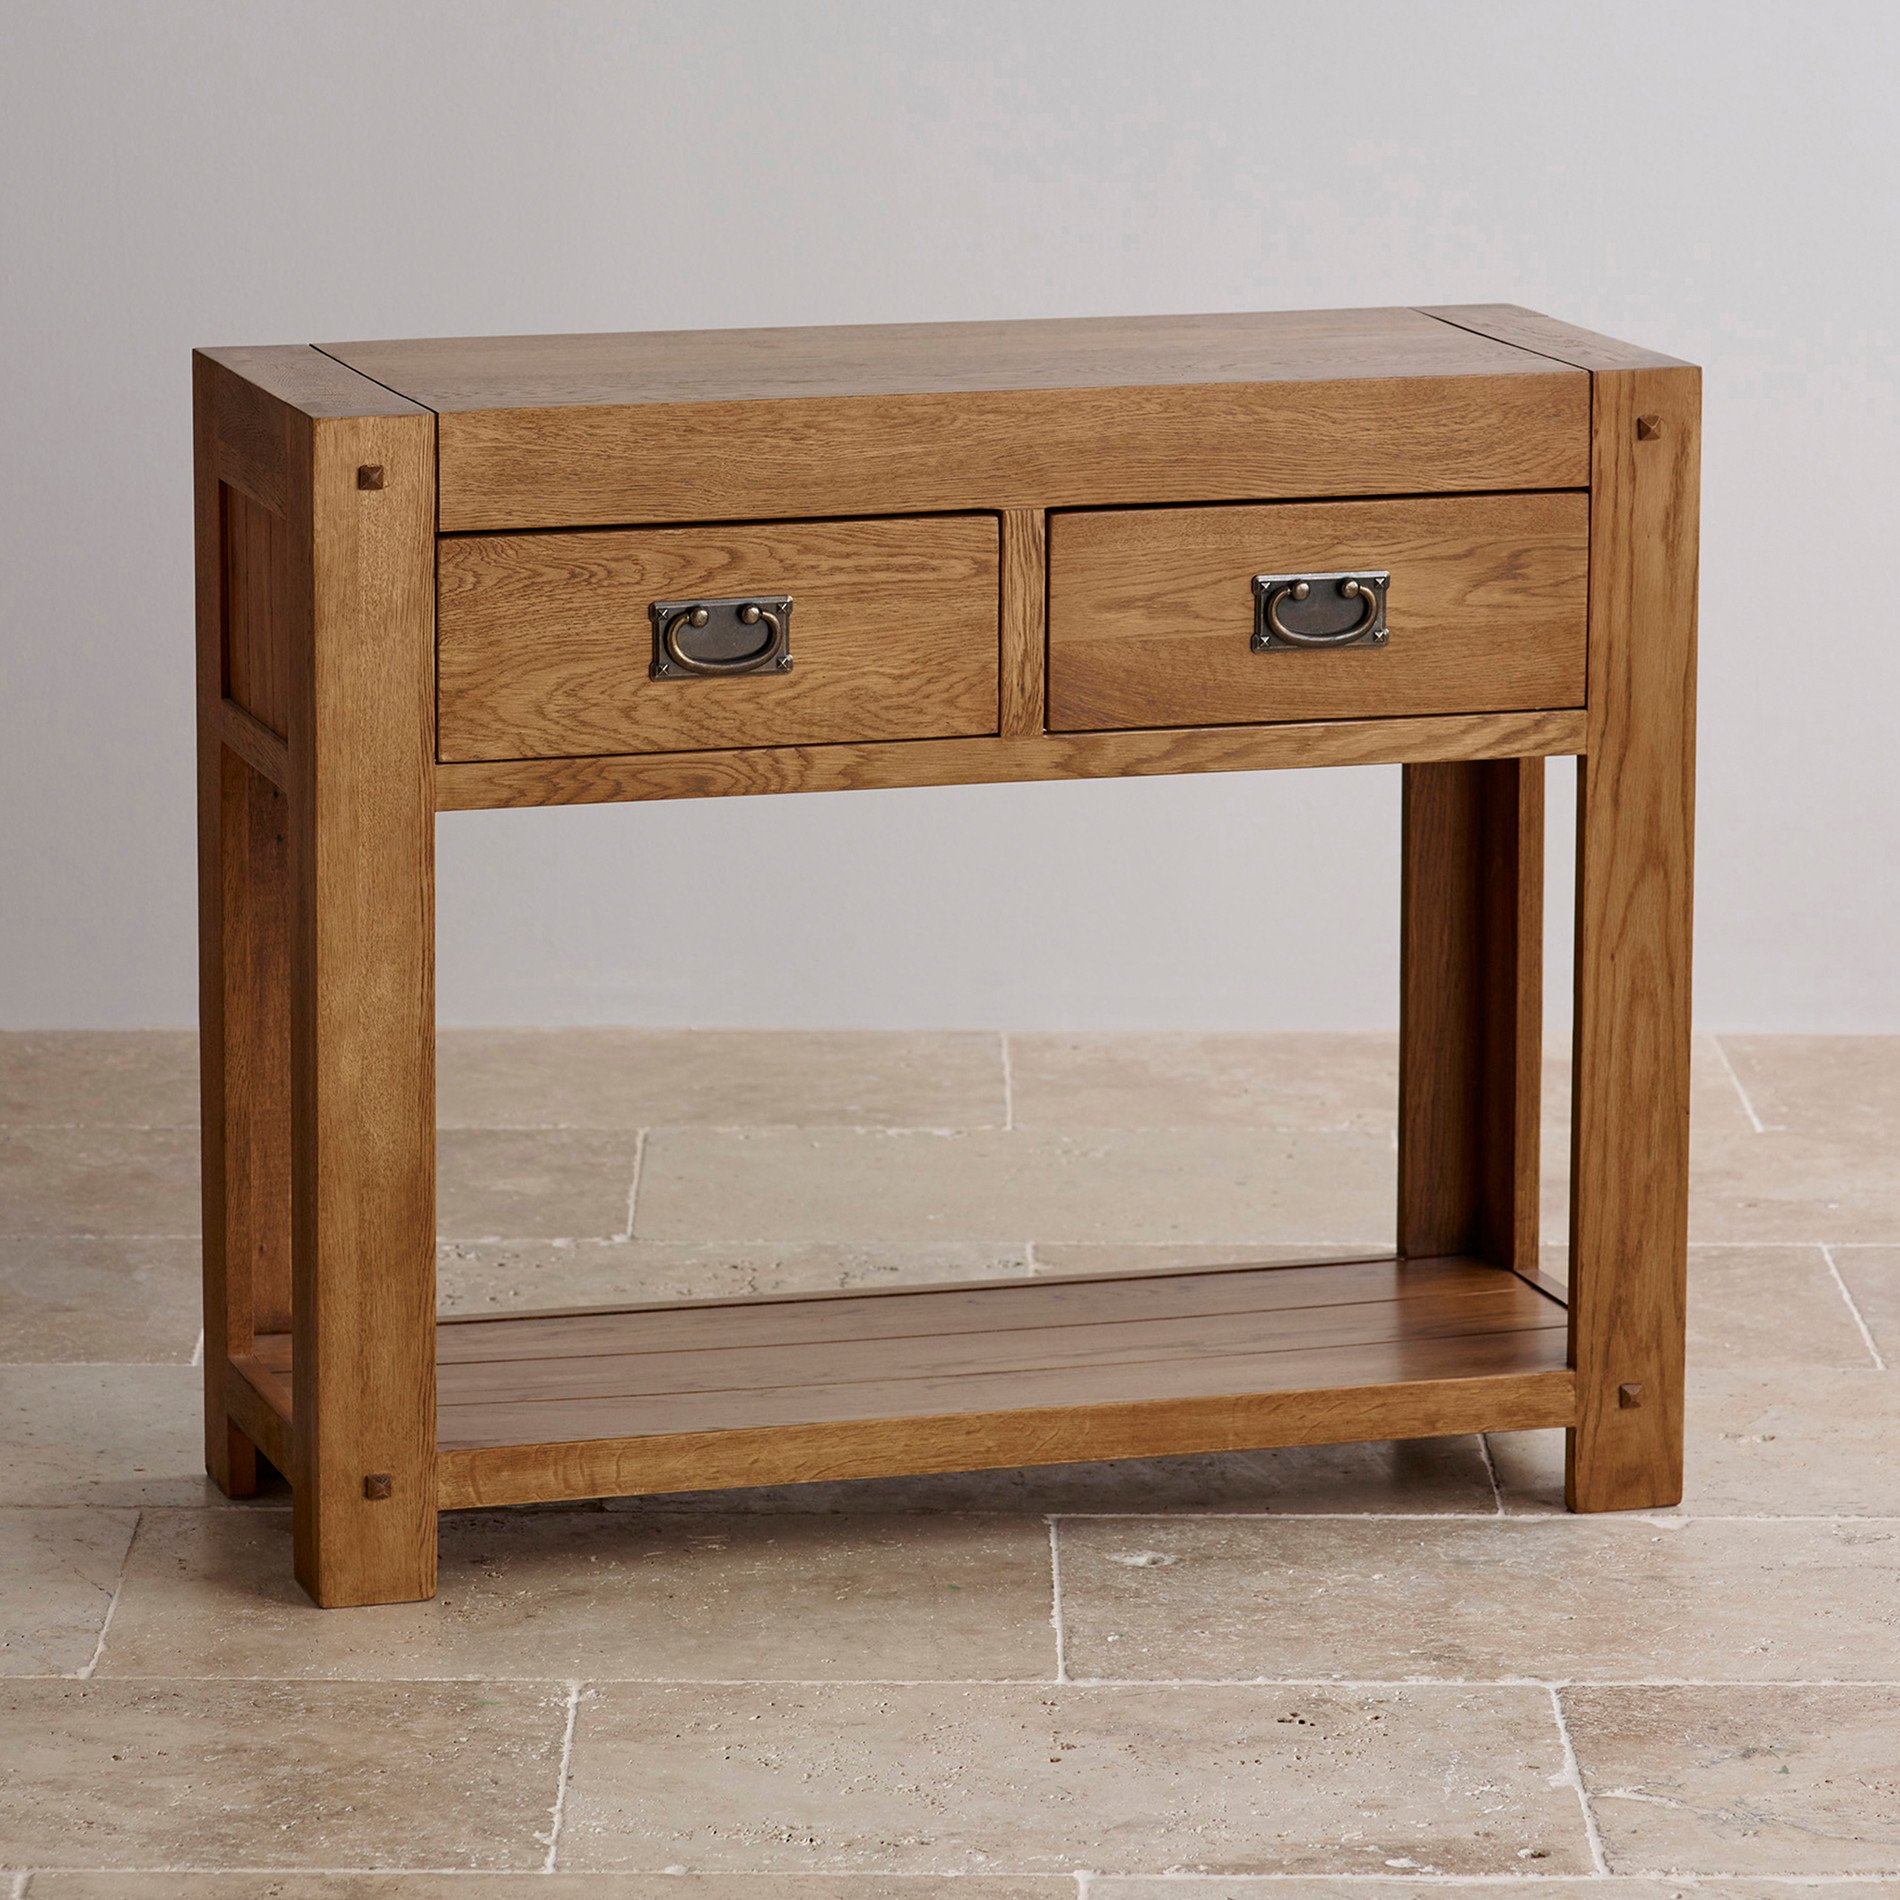 Table Consoles Quercus Console Table In Rustic Solid Oak Oak Furniture Land